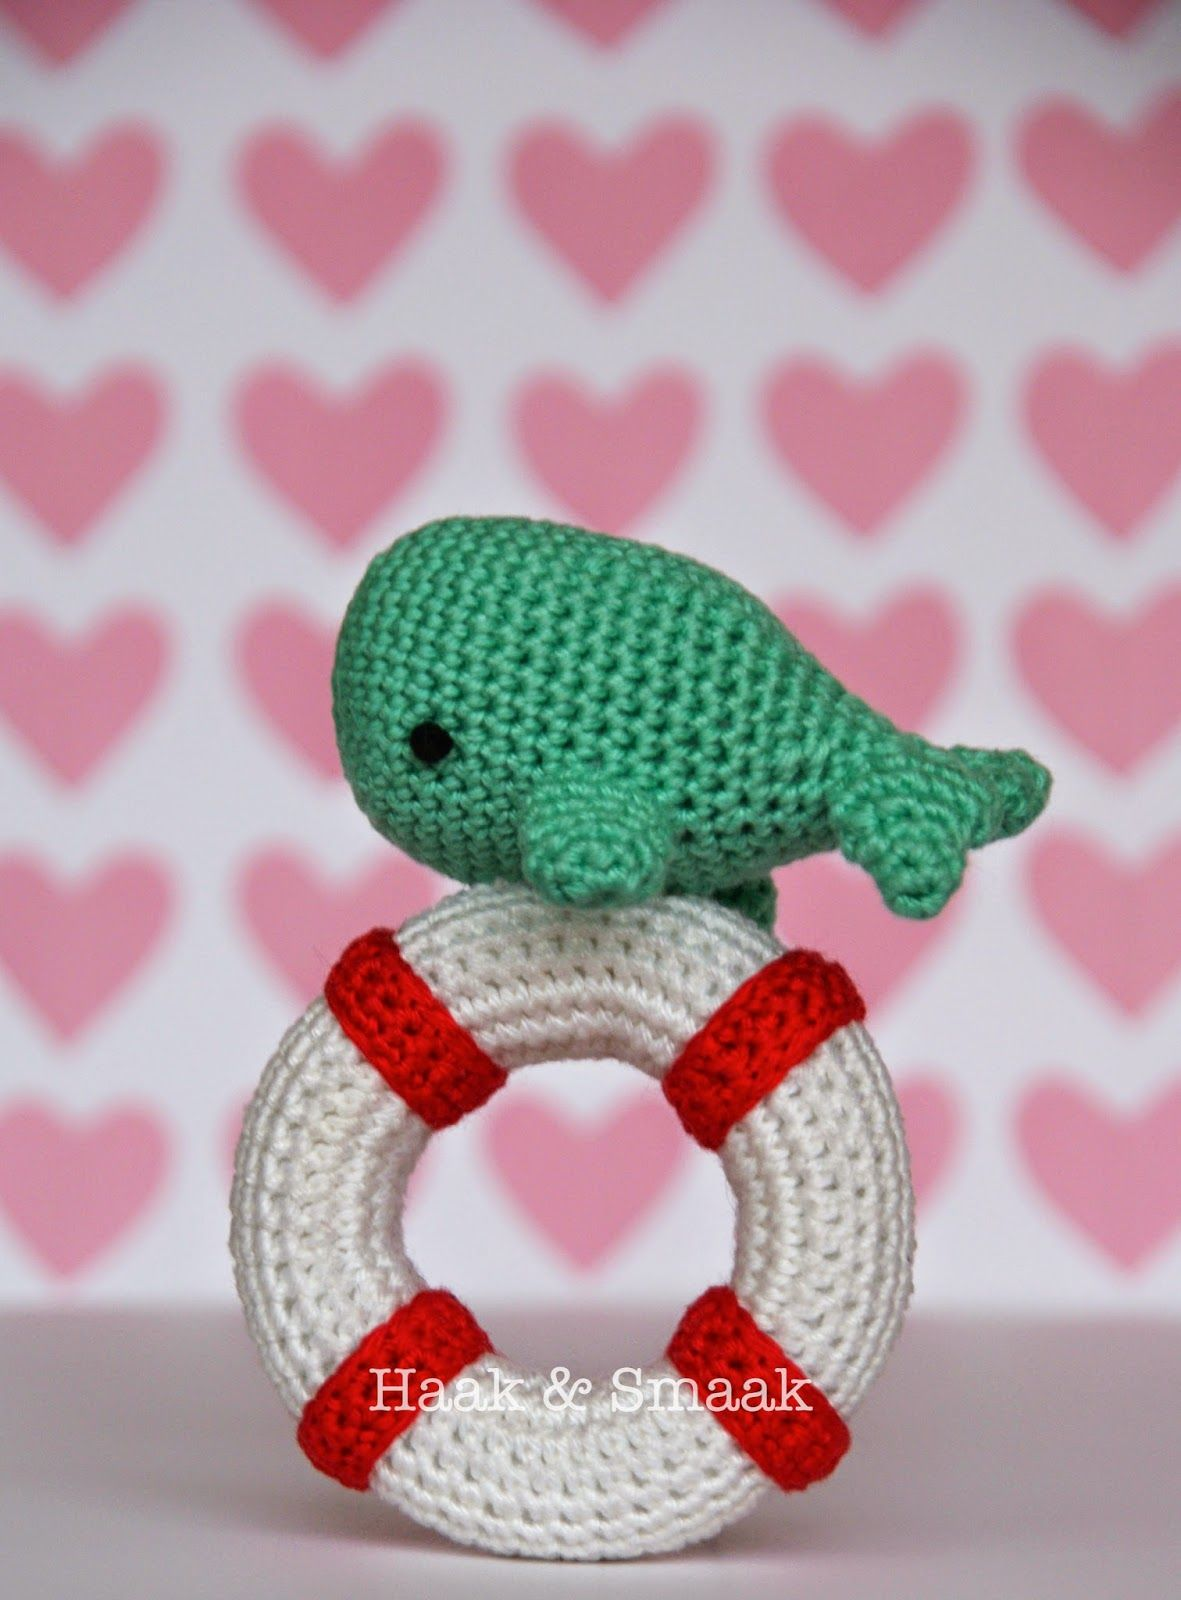 Free crochet pattern for whale rattle | Crafts | Pinterest